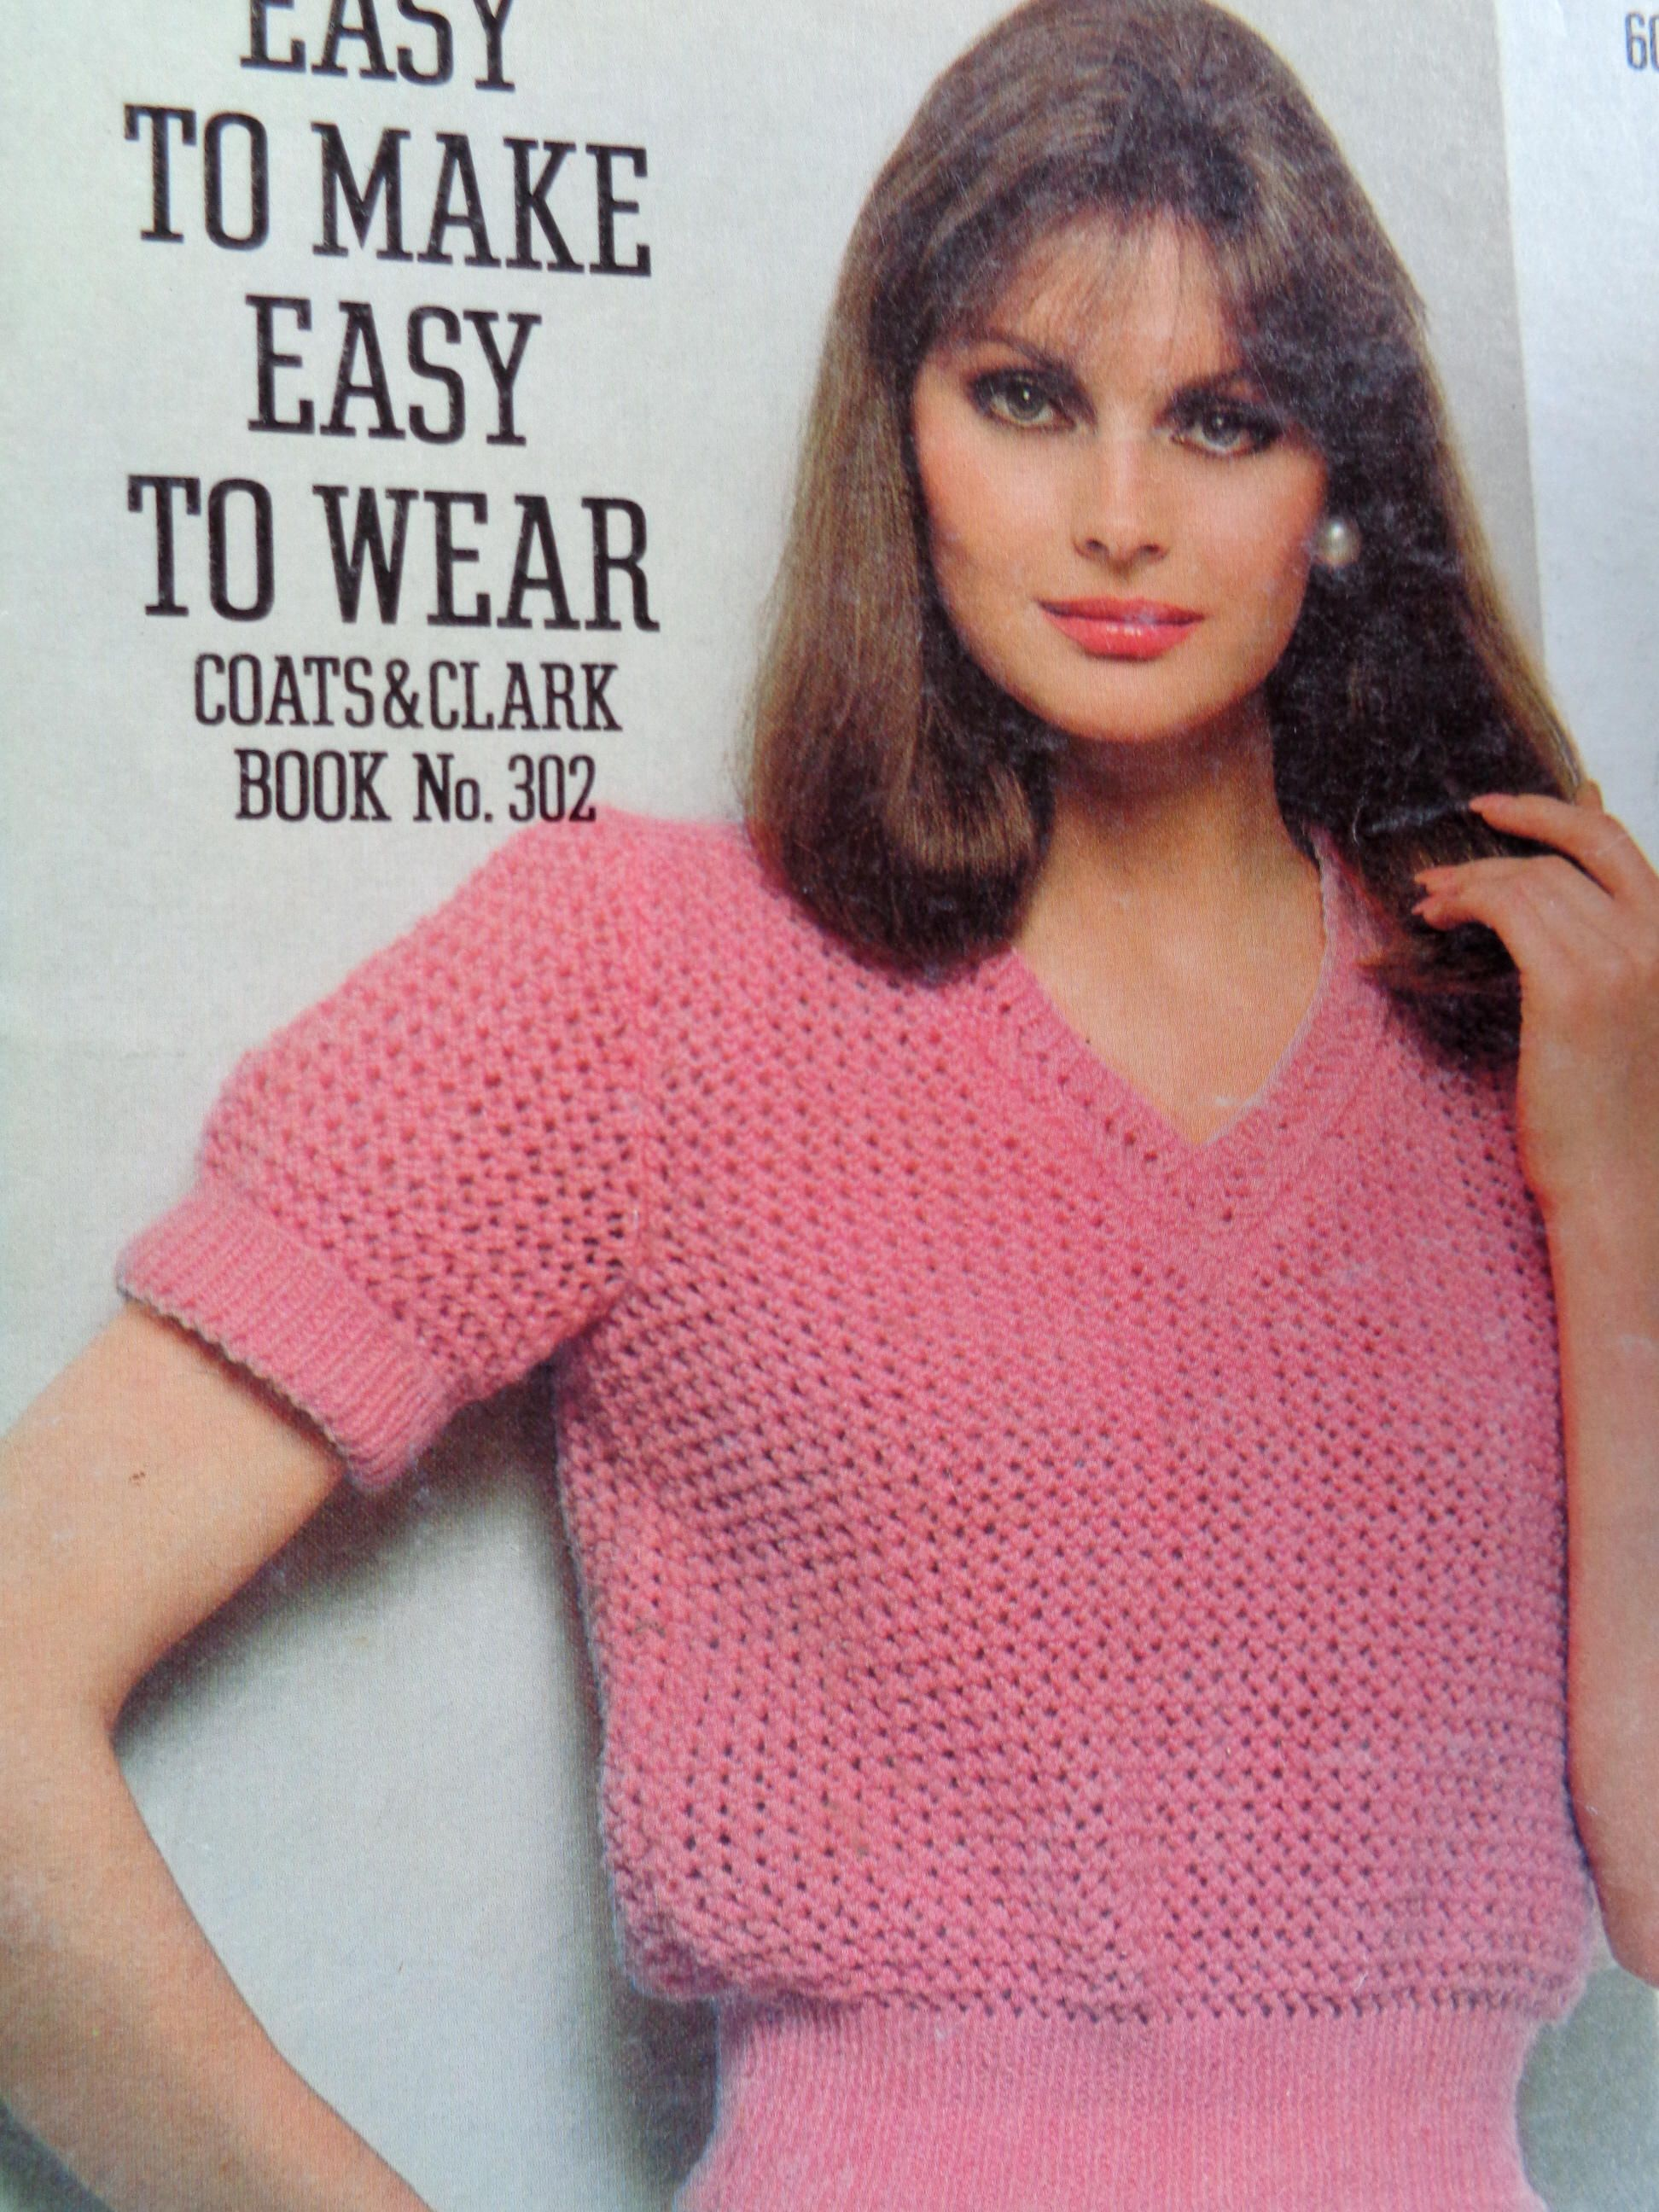 Crochet pattern Knitting pattern Easy To Make Easy to Wear Book No ...